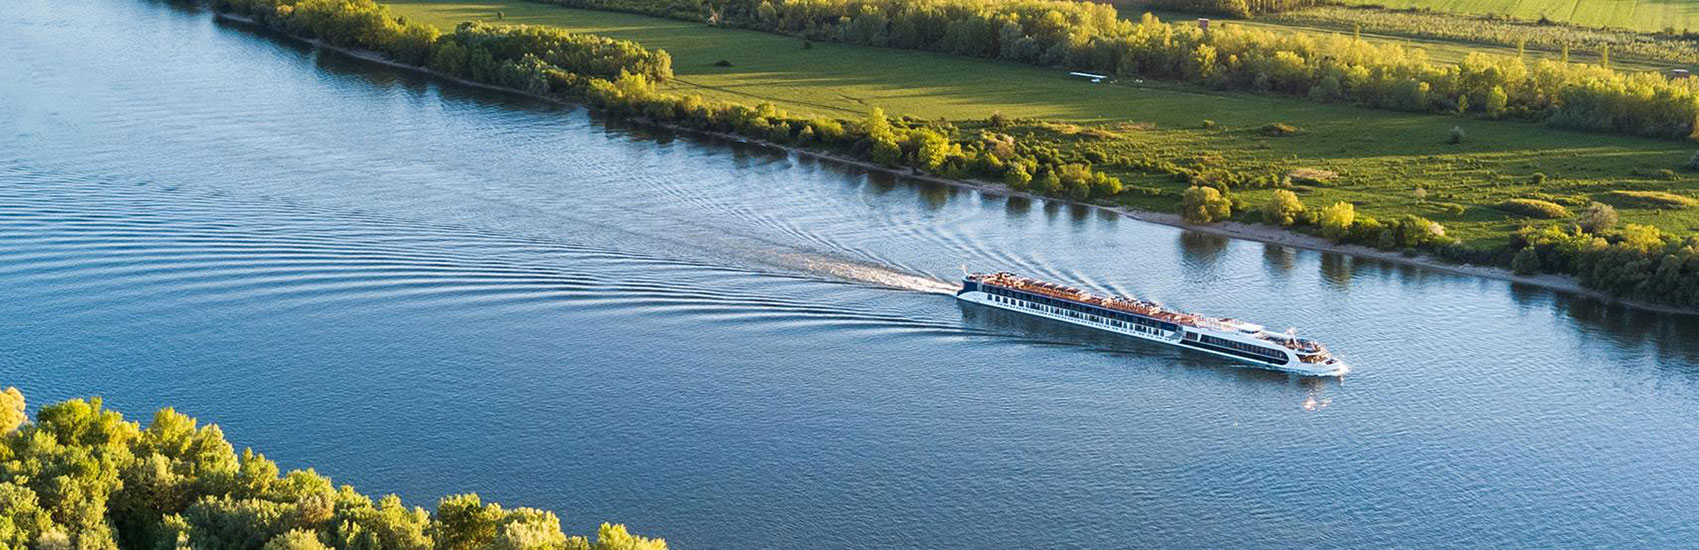 AmaWaterways Commitment to Health and Safety